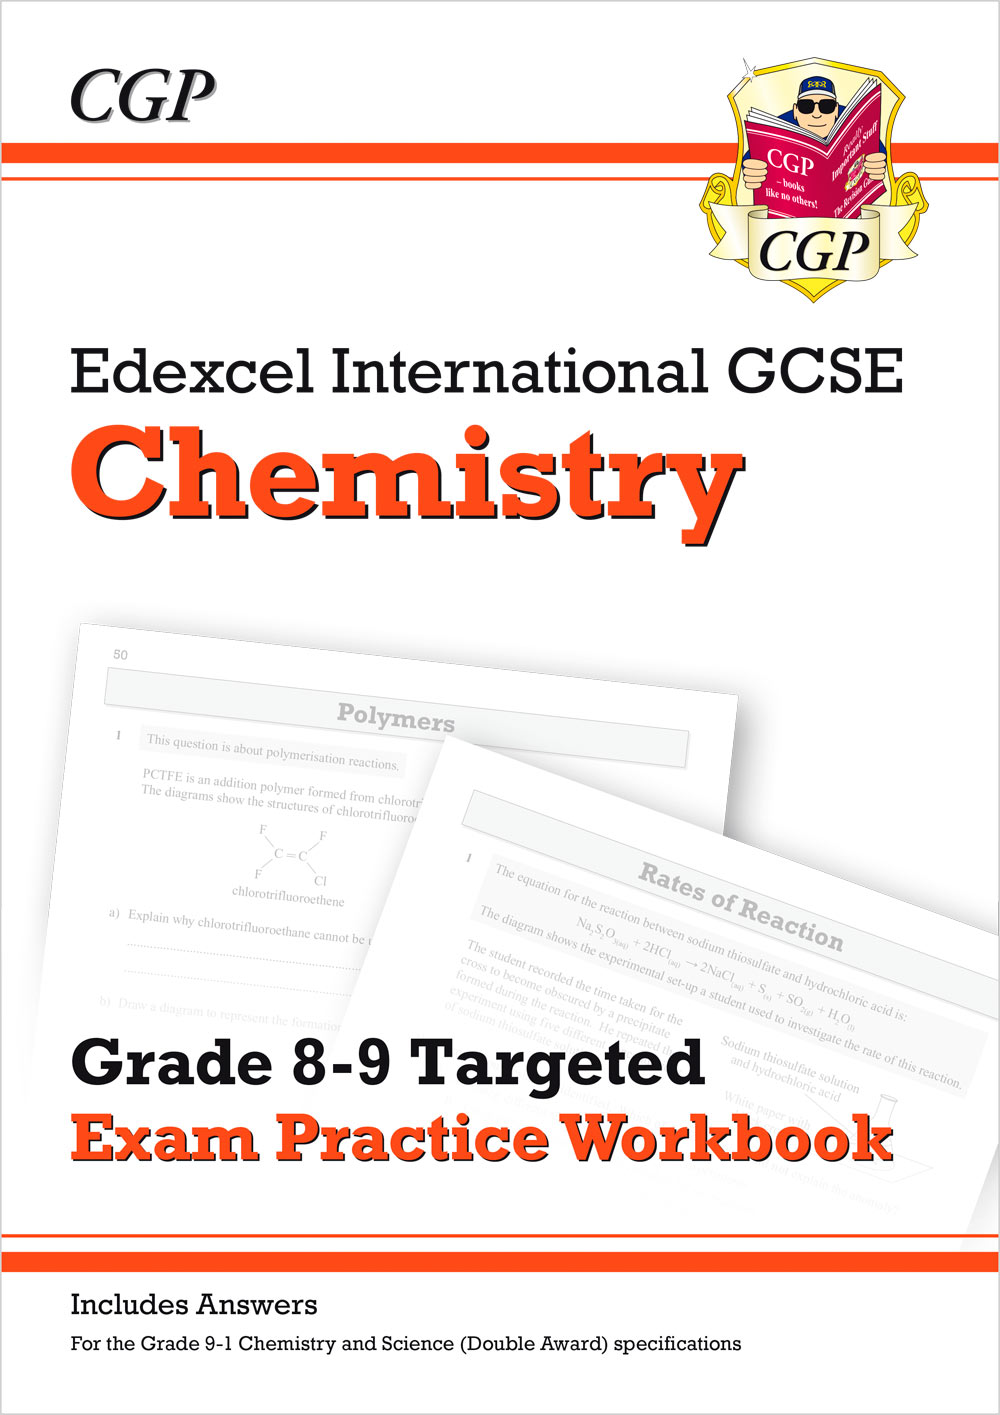 CE9QI41 - New Edexcel International GCSE Chemistry: Grade 8-9 Targeted Exam Practice Workbook (with